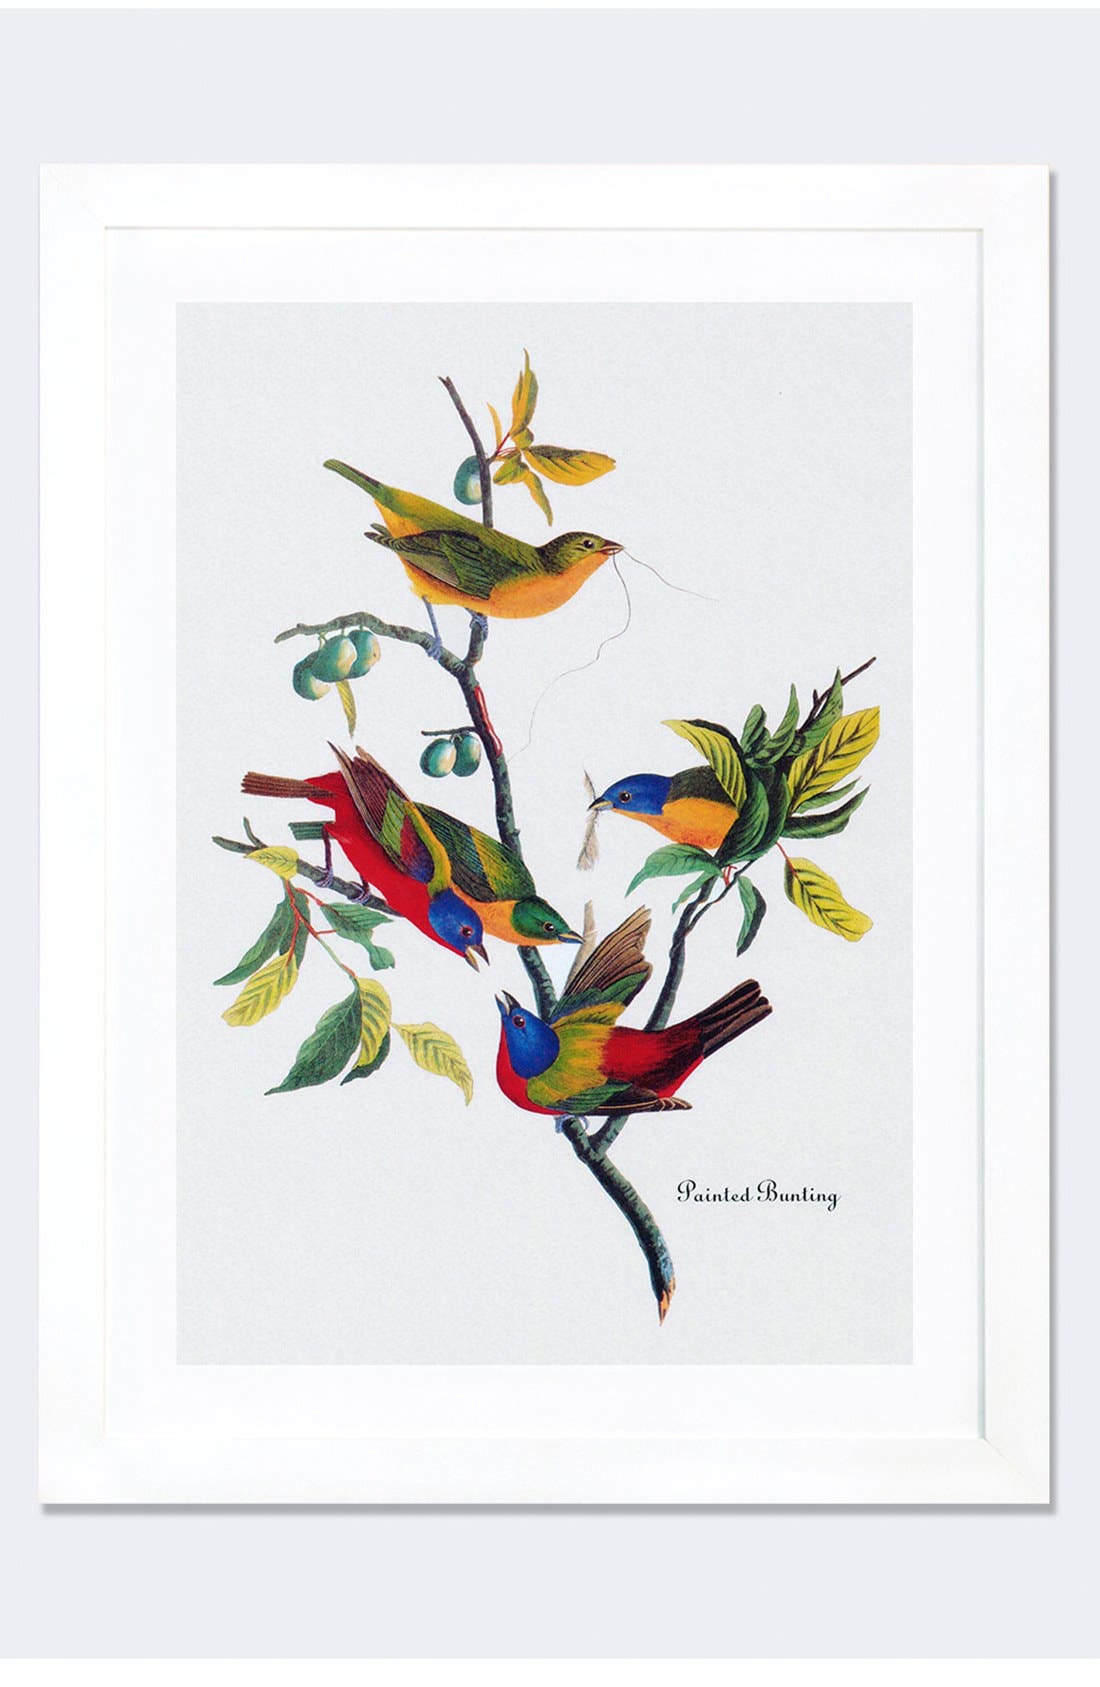 'Painted Bunting' Framed Fine Art Print,                         Main,                         color, White